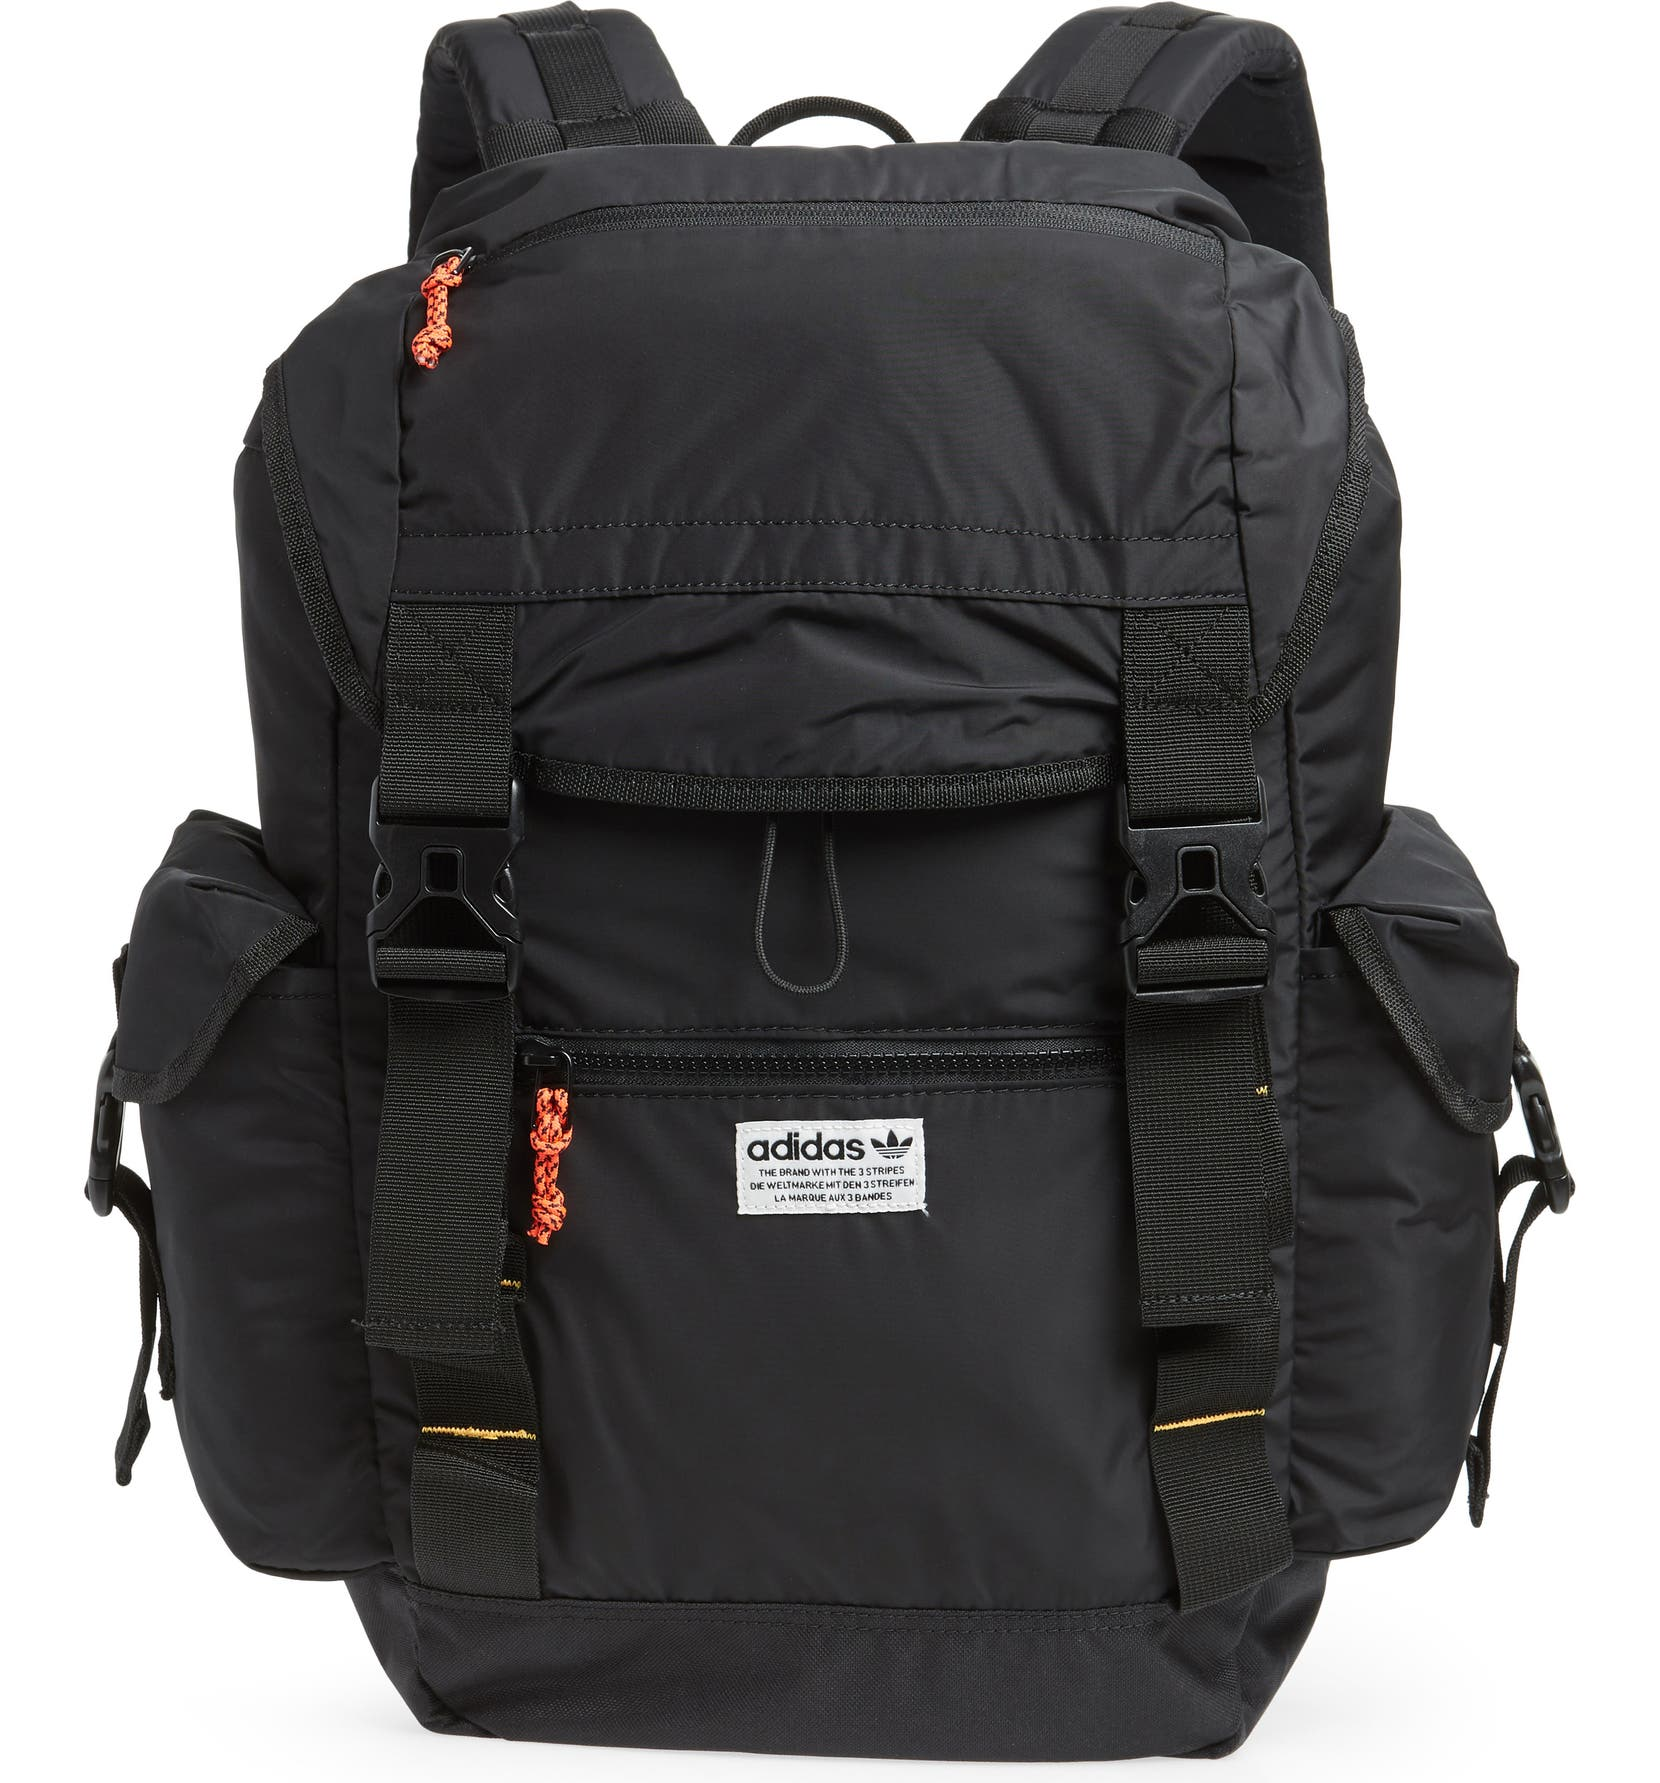 39fbc9cb4e26 adidas Originals Urban Utility Backpack